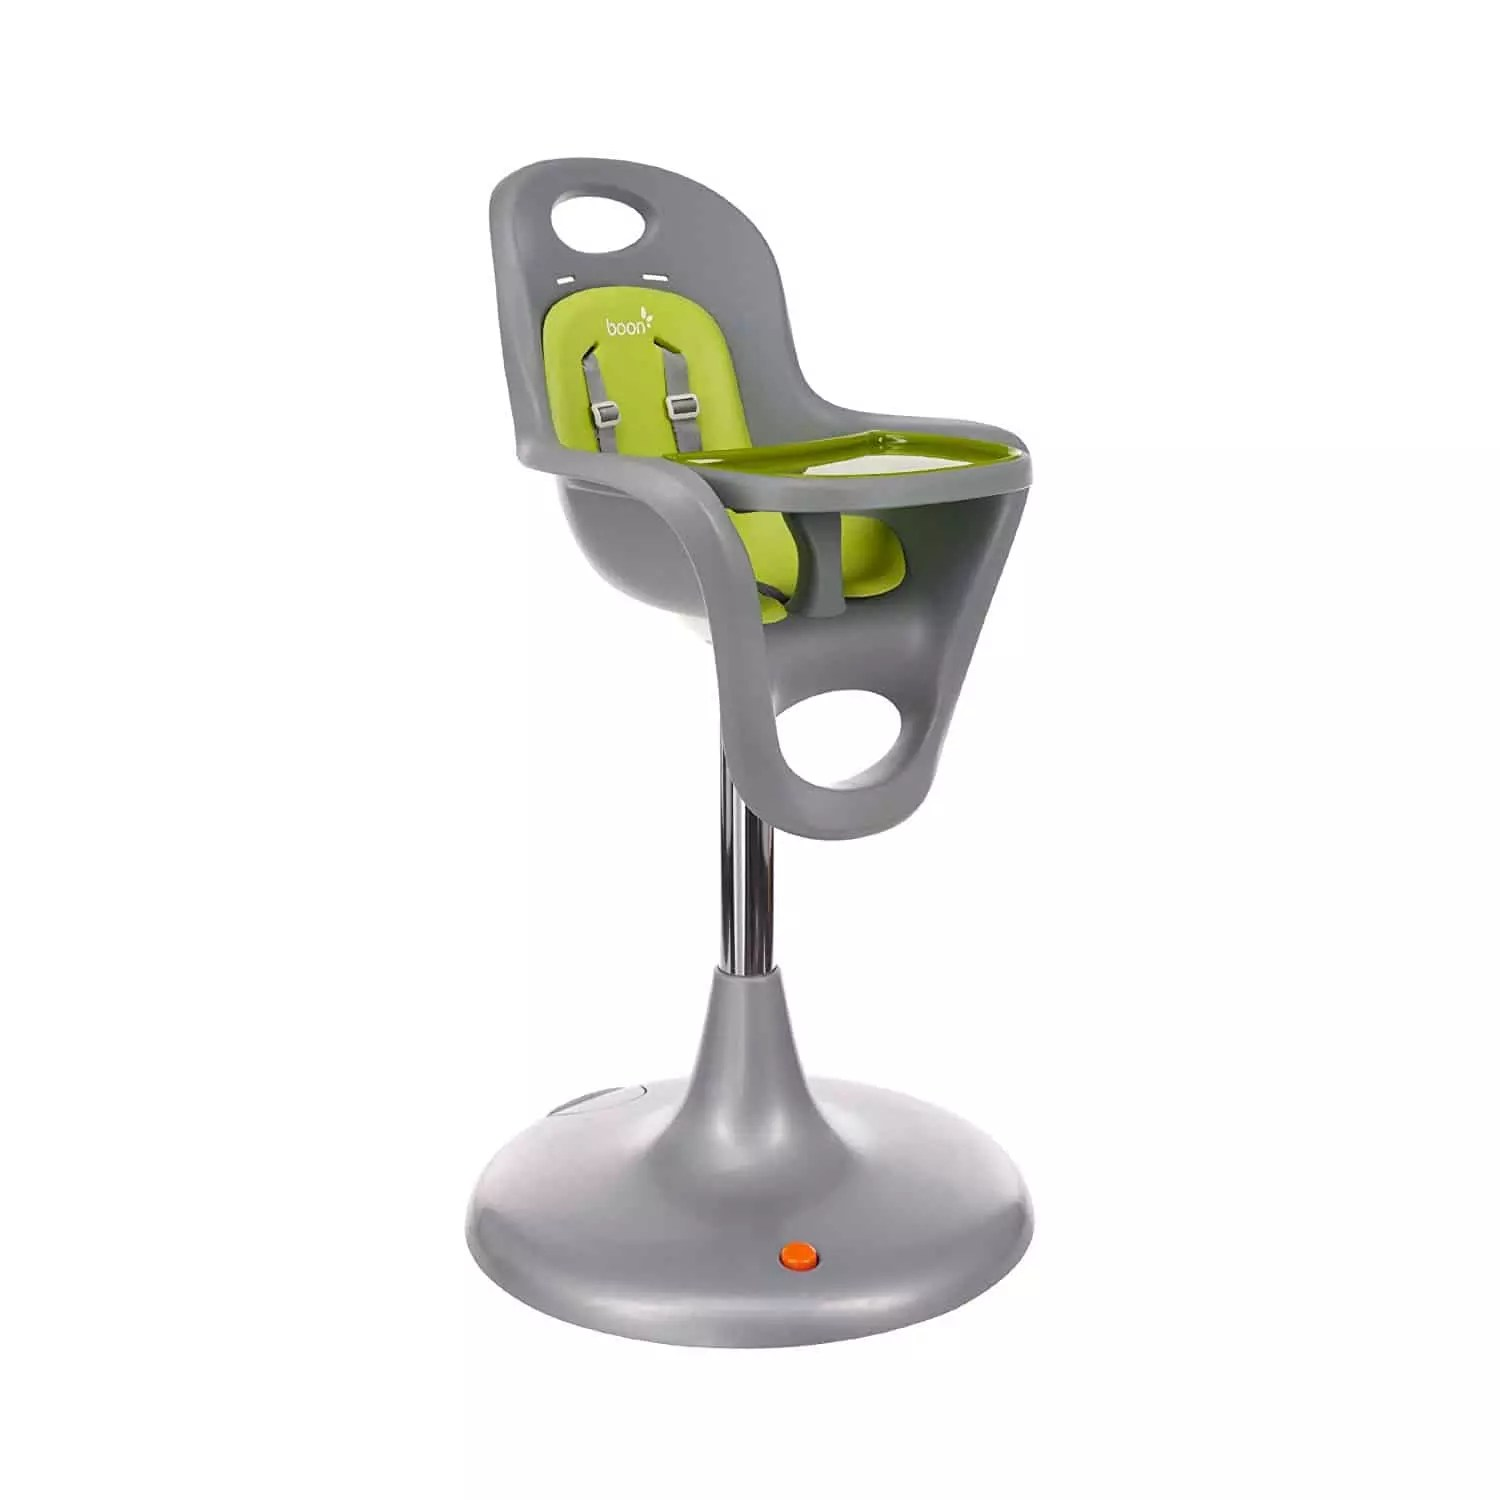 high chairs canada reviews kohls game chair brand review boon baby bargains